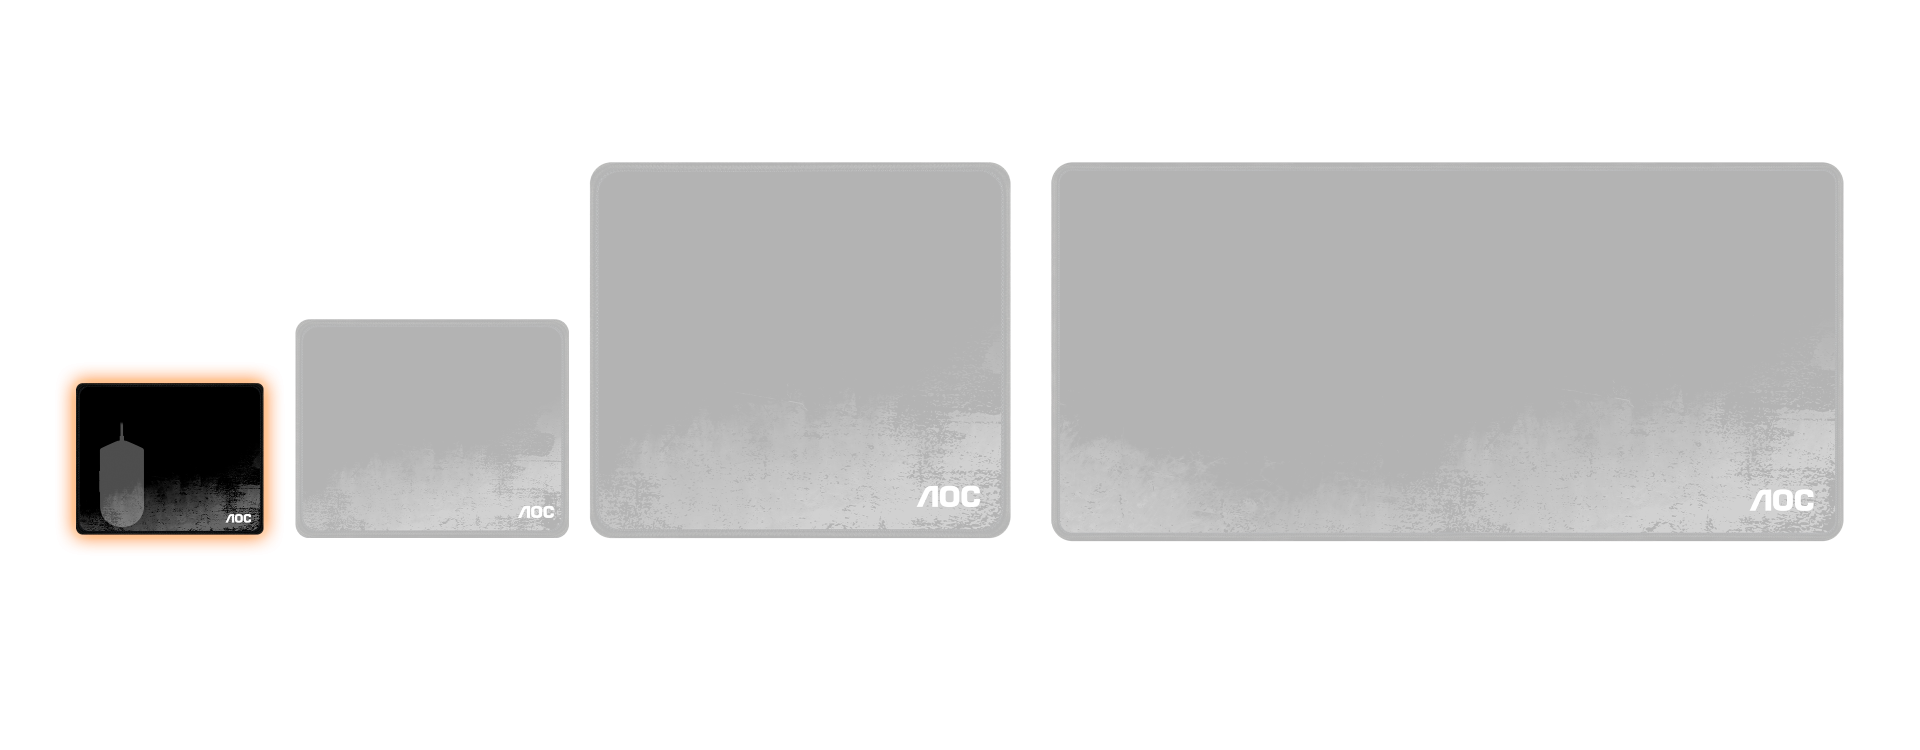 AGON_BY_AOC_FV_FW_MOUSEPAD_S_FRONT.png